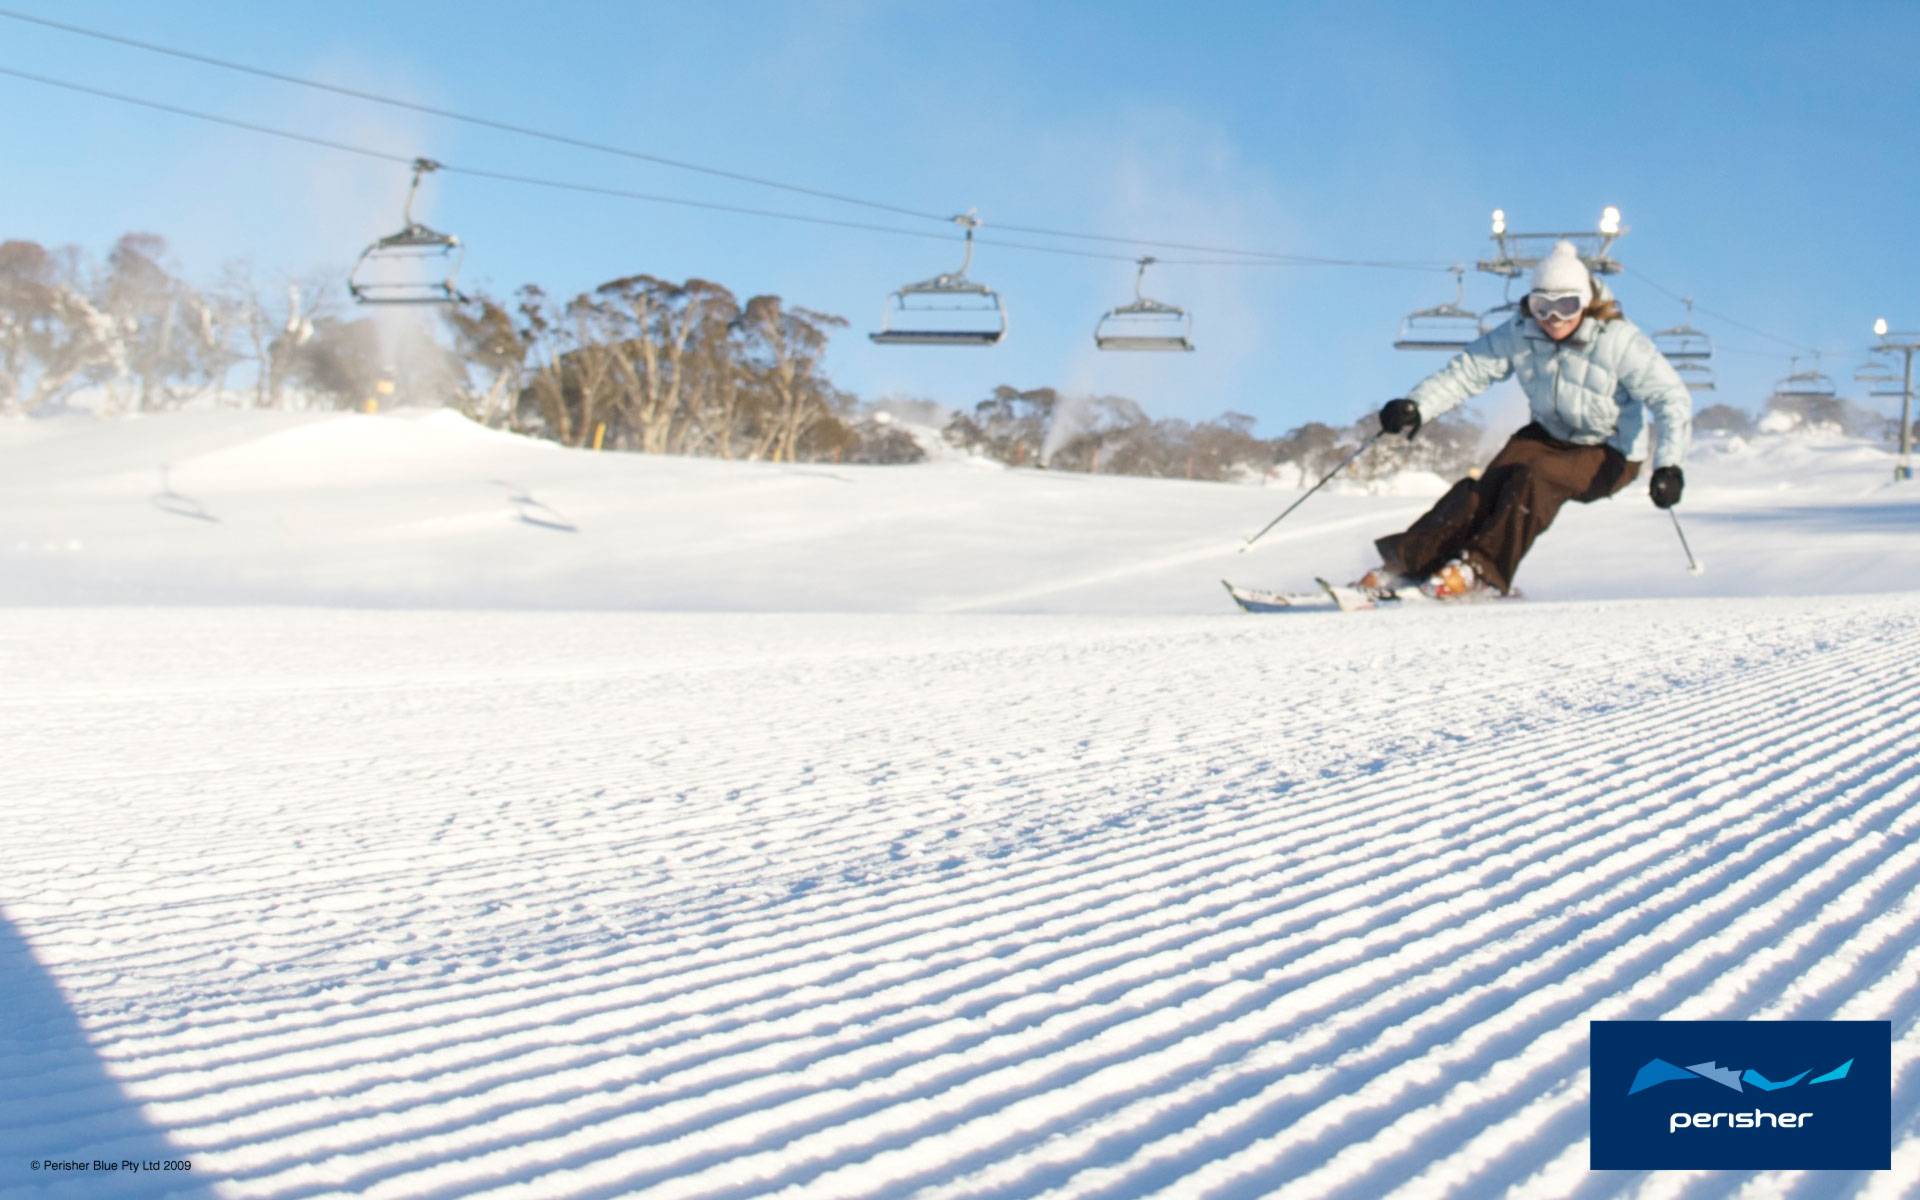 Perisher Wallpapers